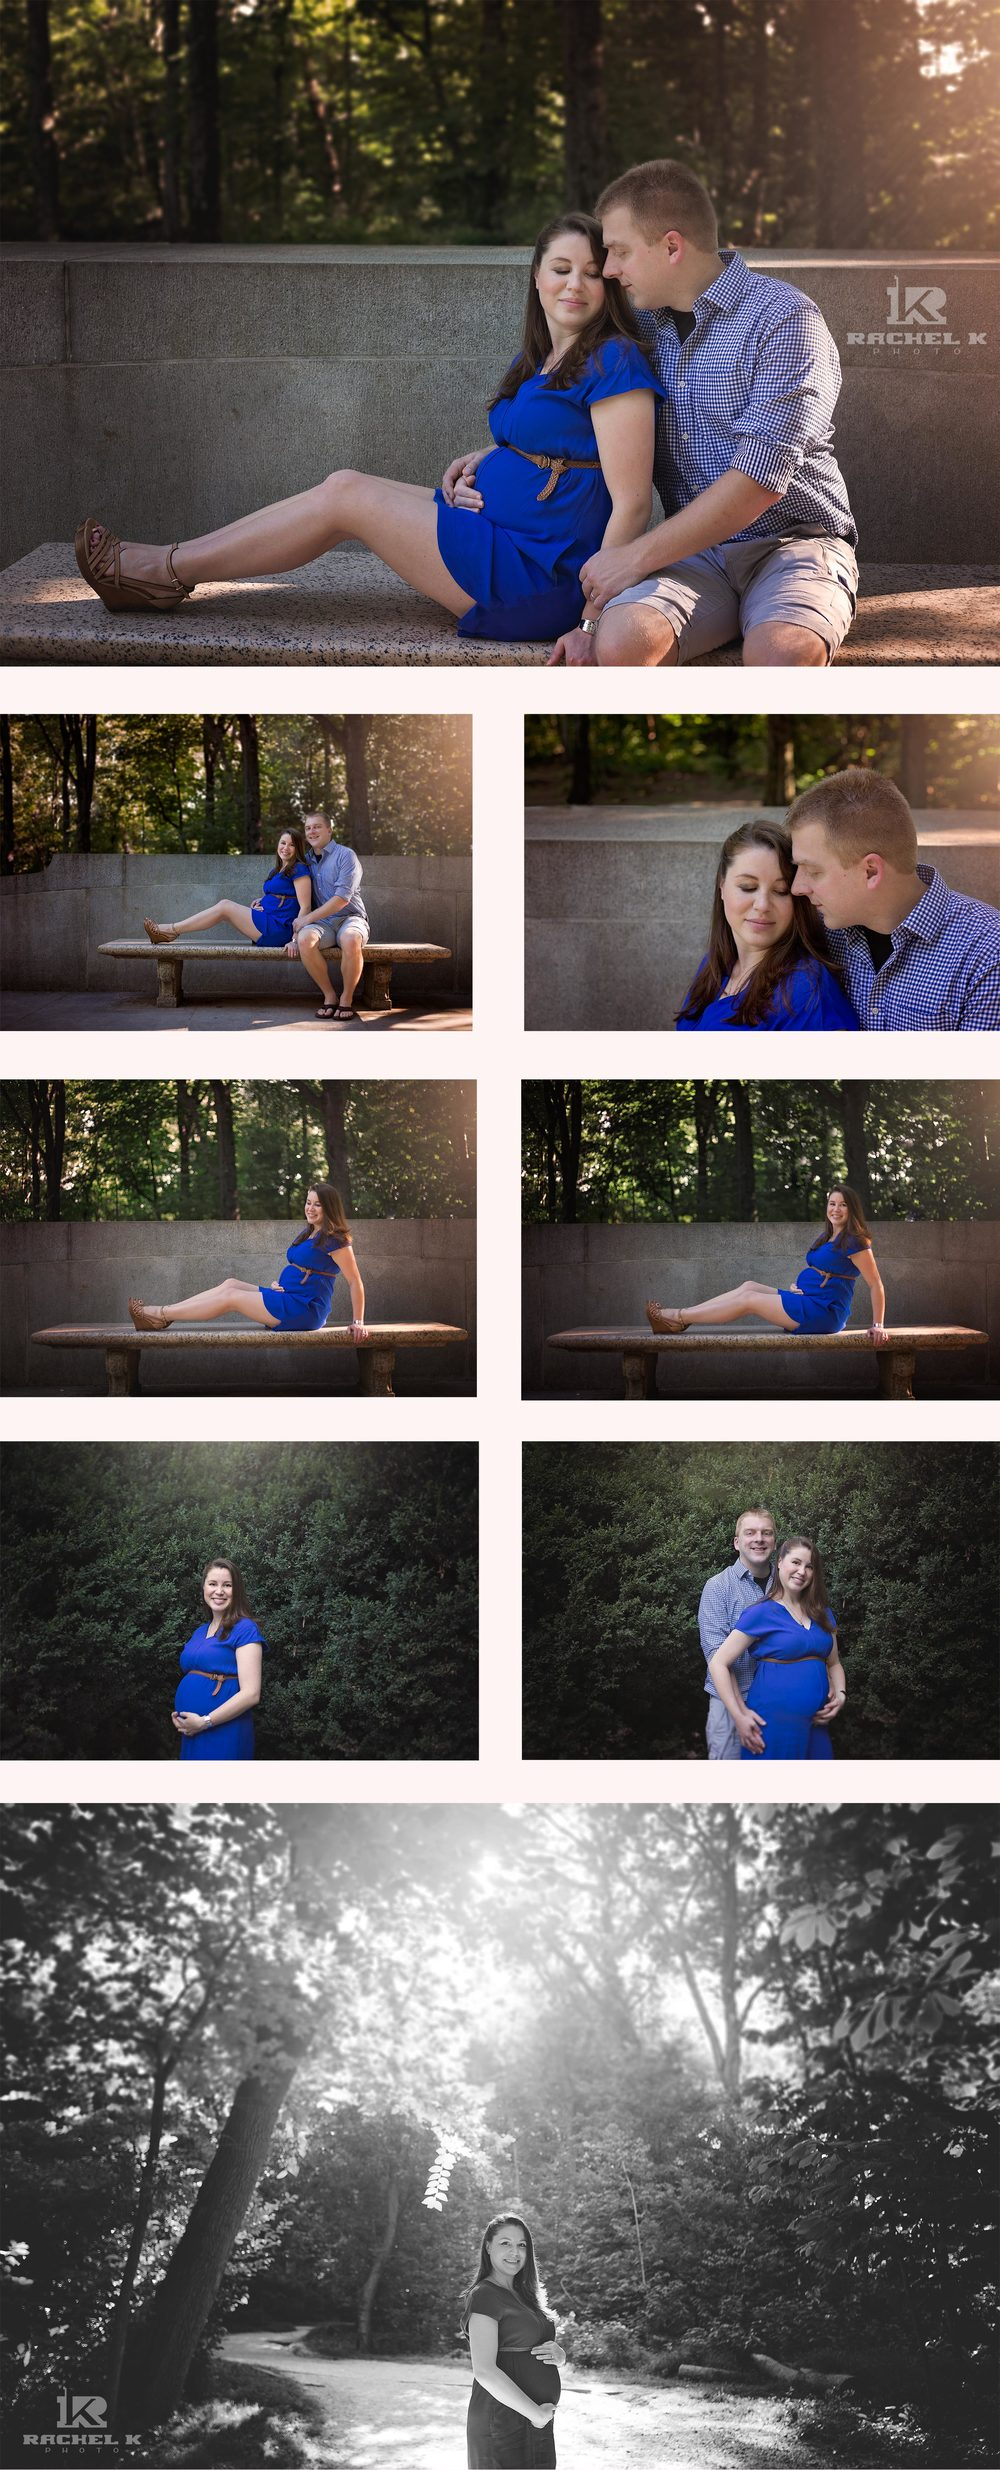 Maternity session with puppy by Rachel K Photo